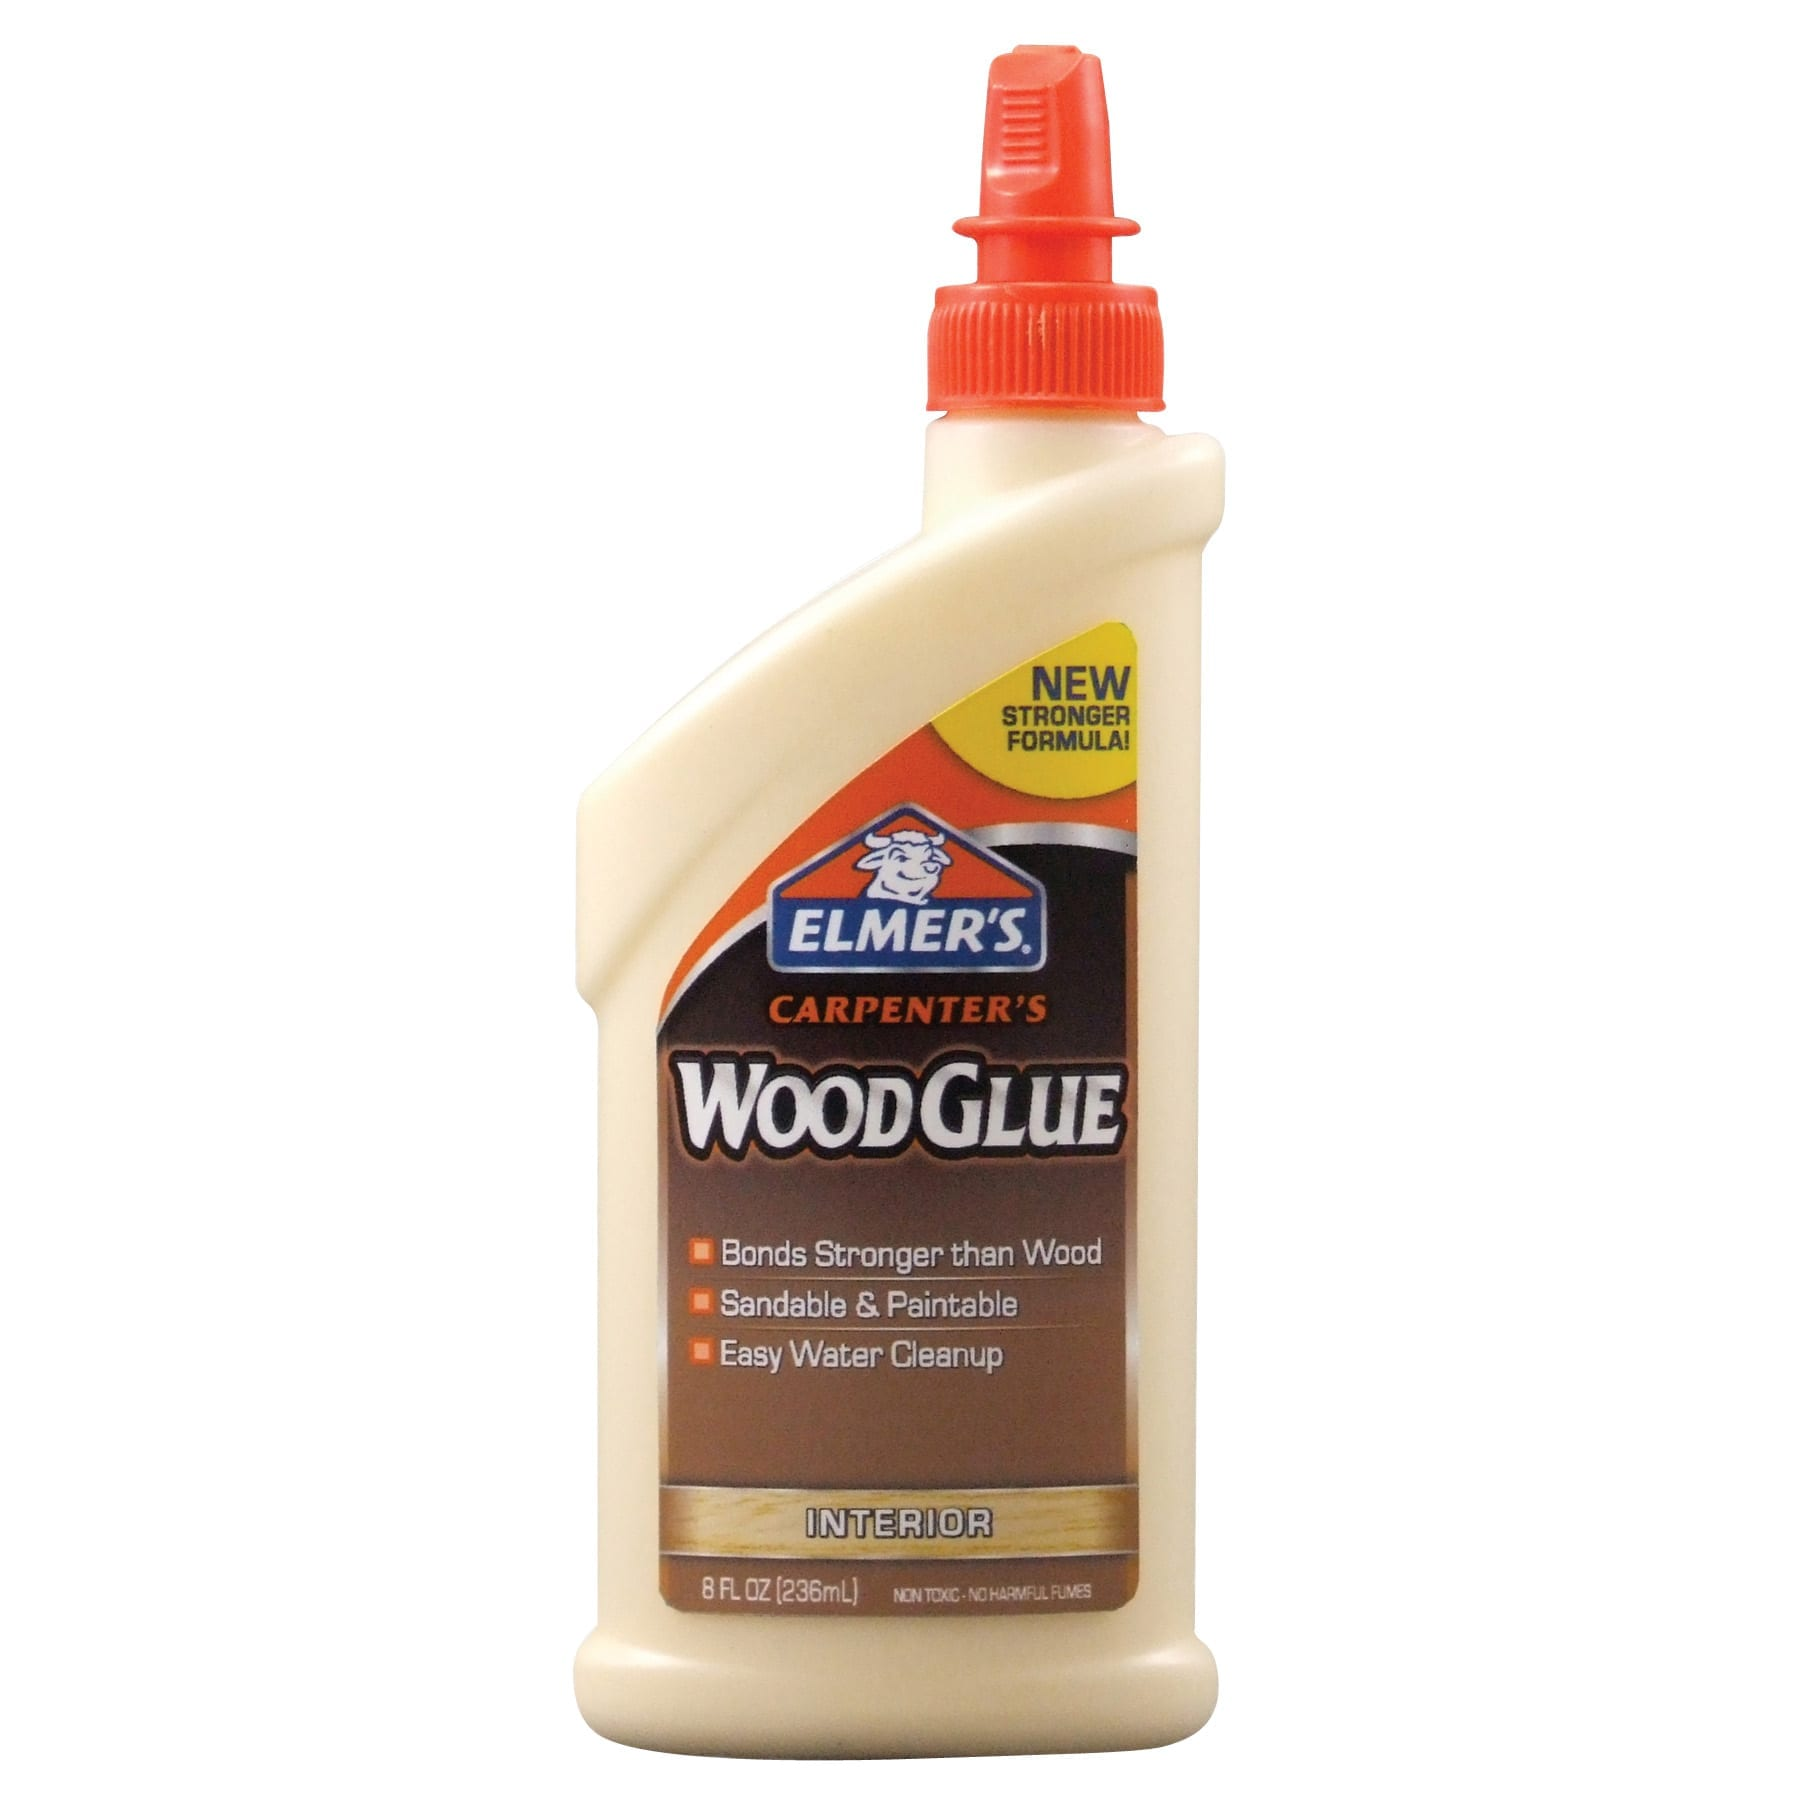 Elmer's E7010 Carpenter's Wood Glue